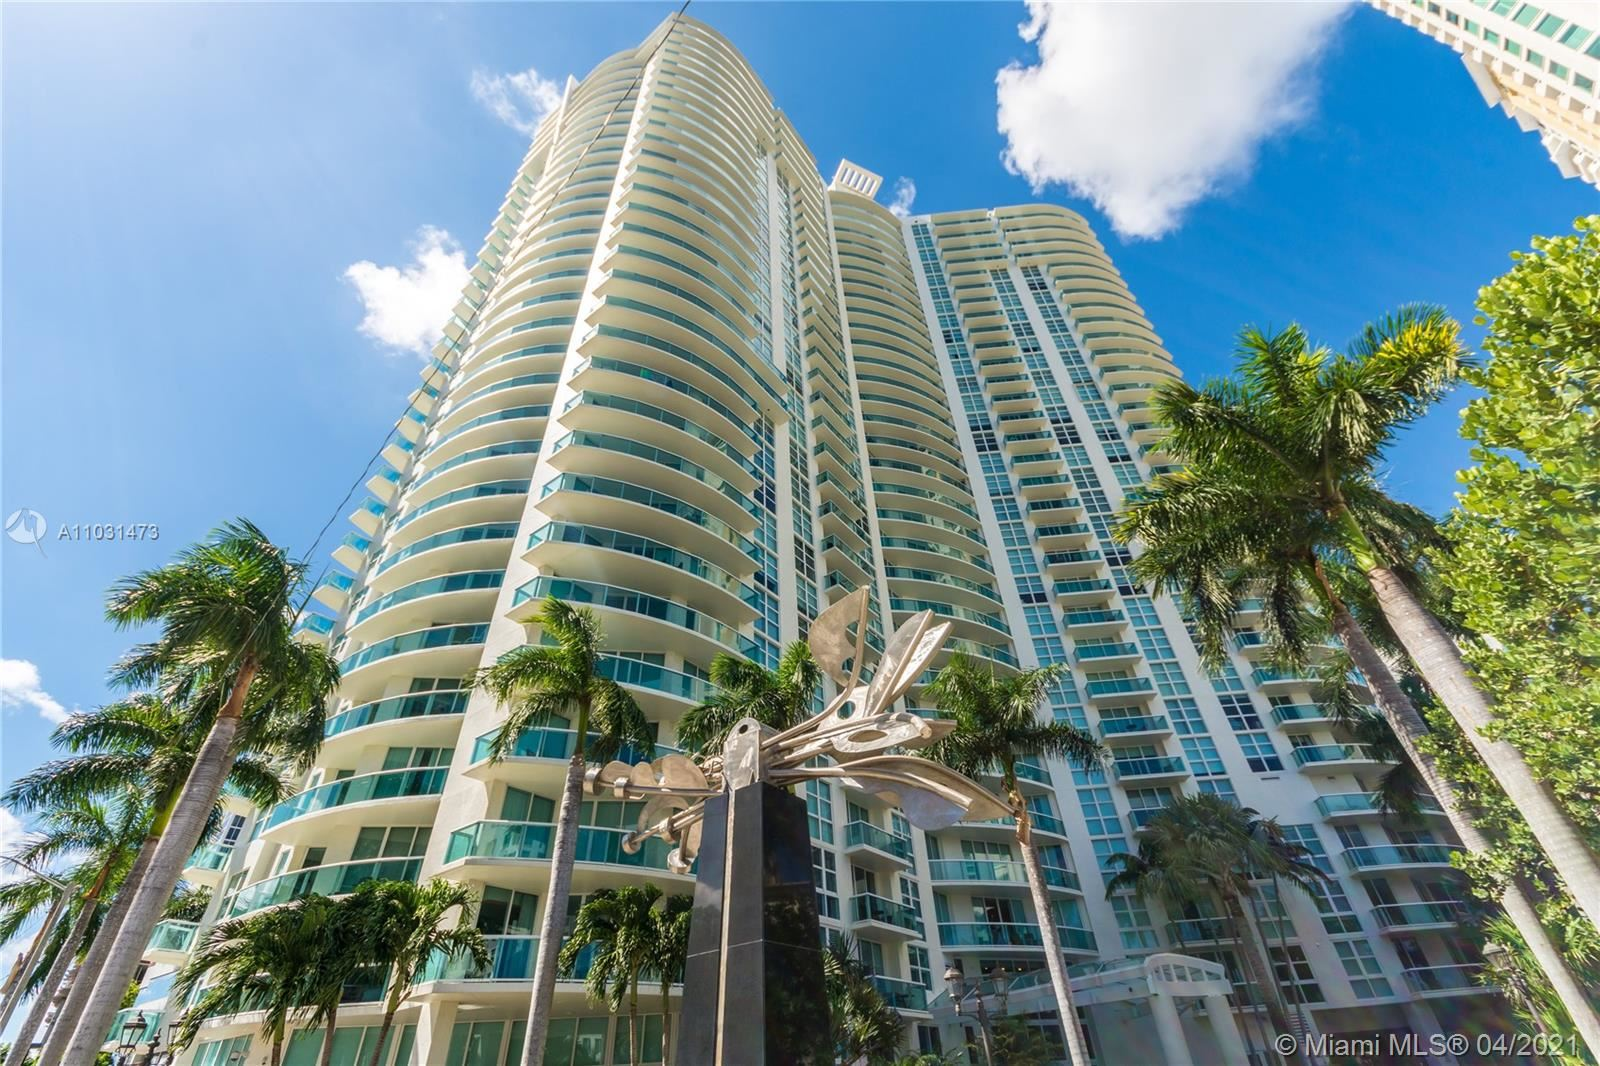 347 N New River Dr E #2809, Fort Lauderdale, FL 33301 - #: A11031473